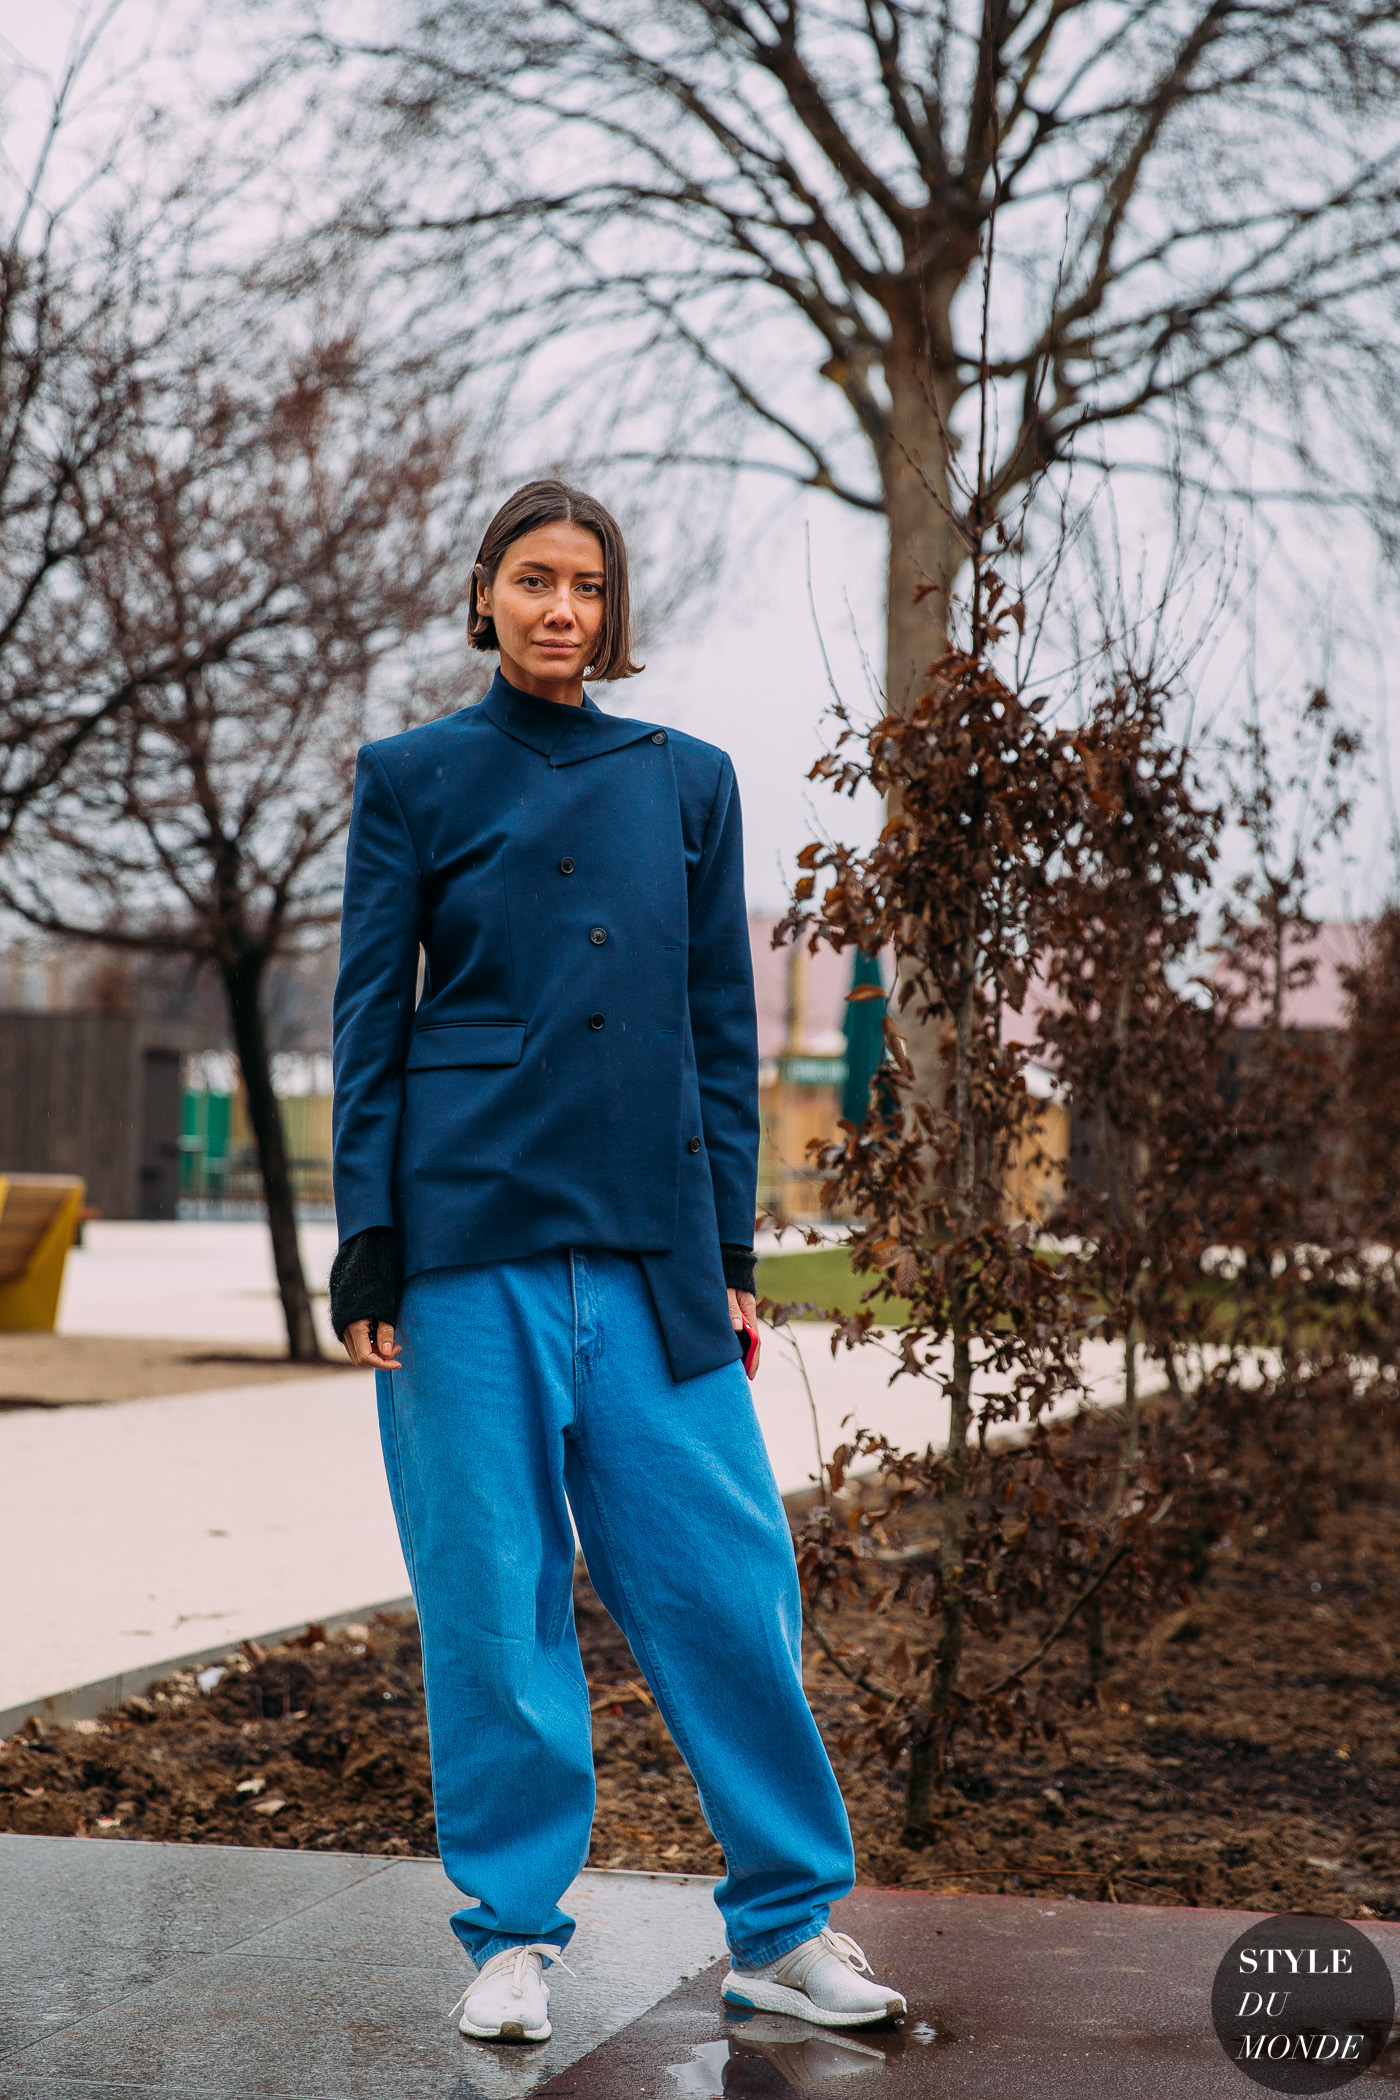 Julie Pelipas by STYLEDUMONDE Street Style Fashion Photography FW18 20180304_48A2780